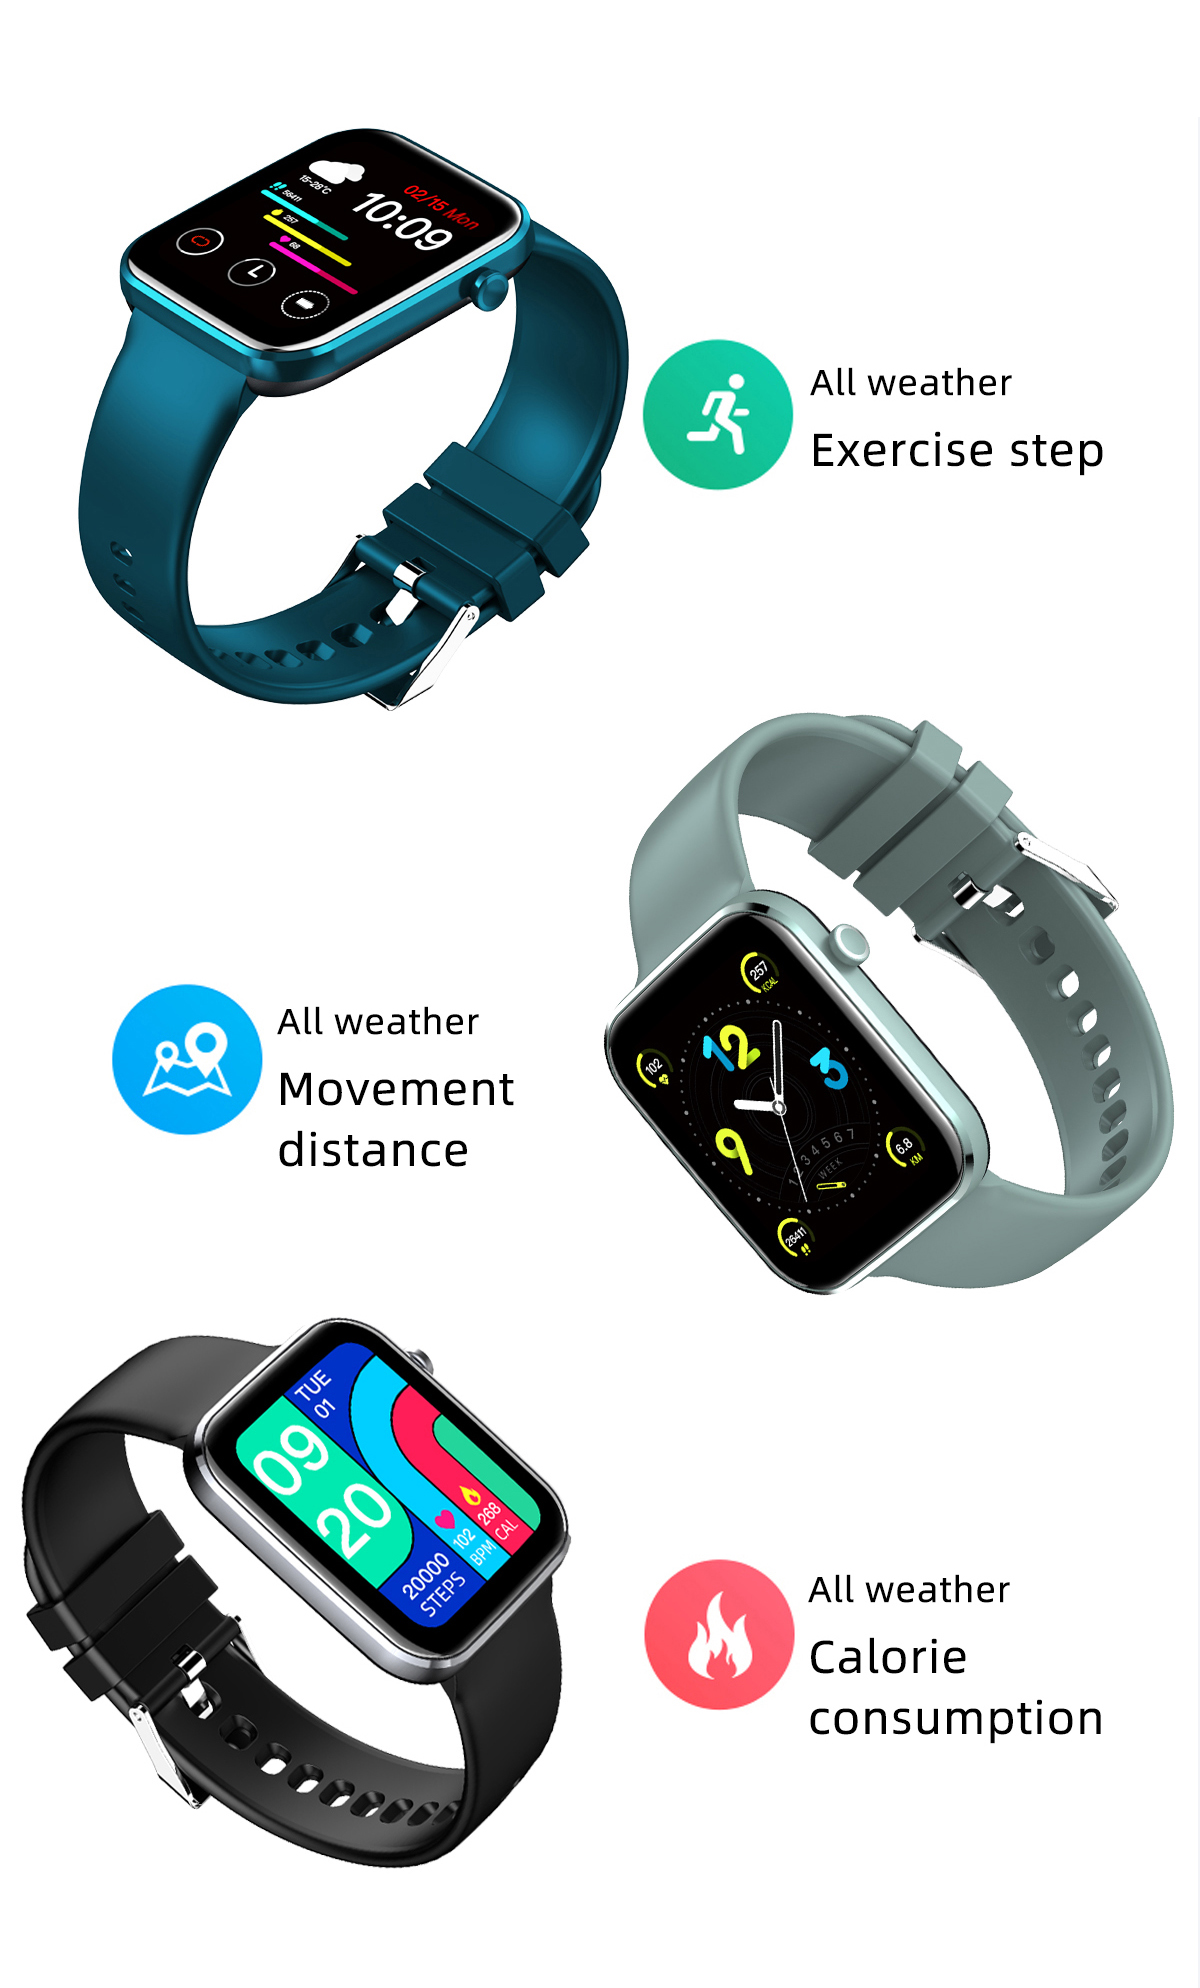 H8352c4e8eb474f37ba4616d0d35a897dp MISIRUN Z15 Smart Watch for Man Women Full Touch Blood Pressure Smart Clock Women watch Smartwatch for IOS Android Xiaomi Phone